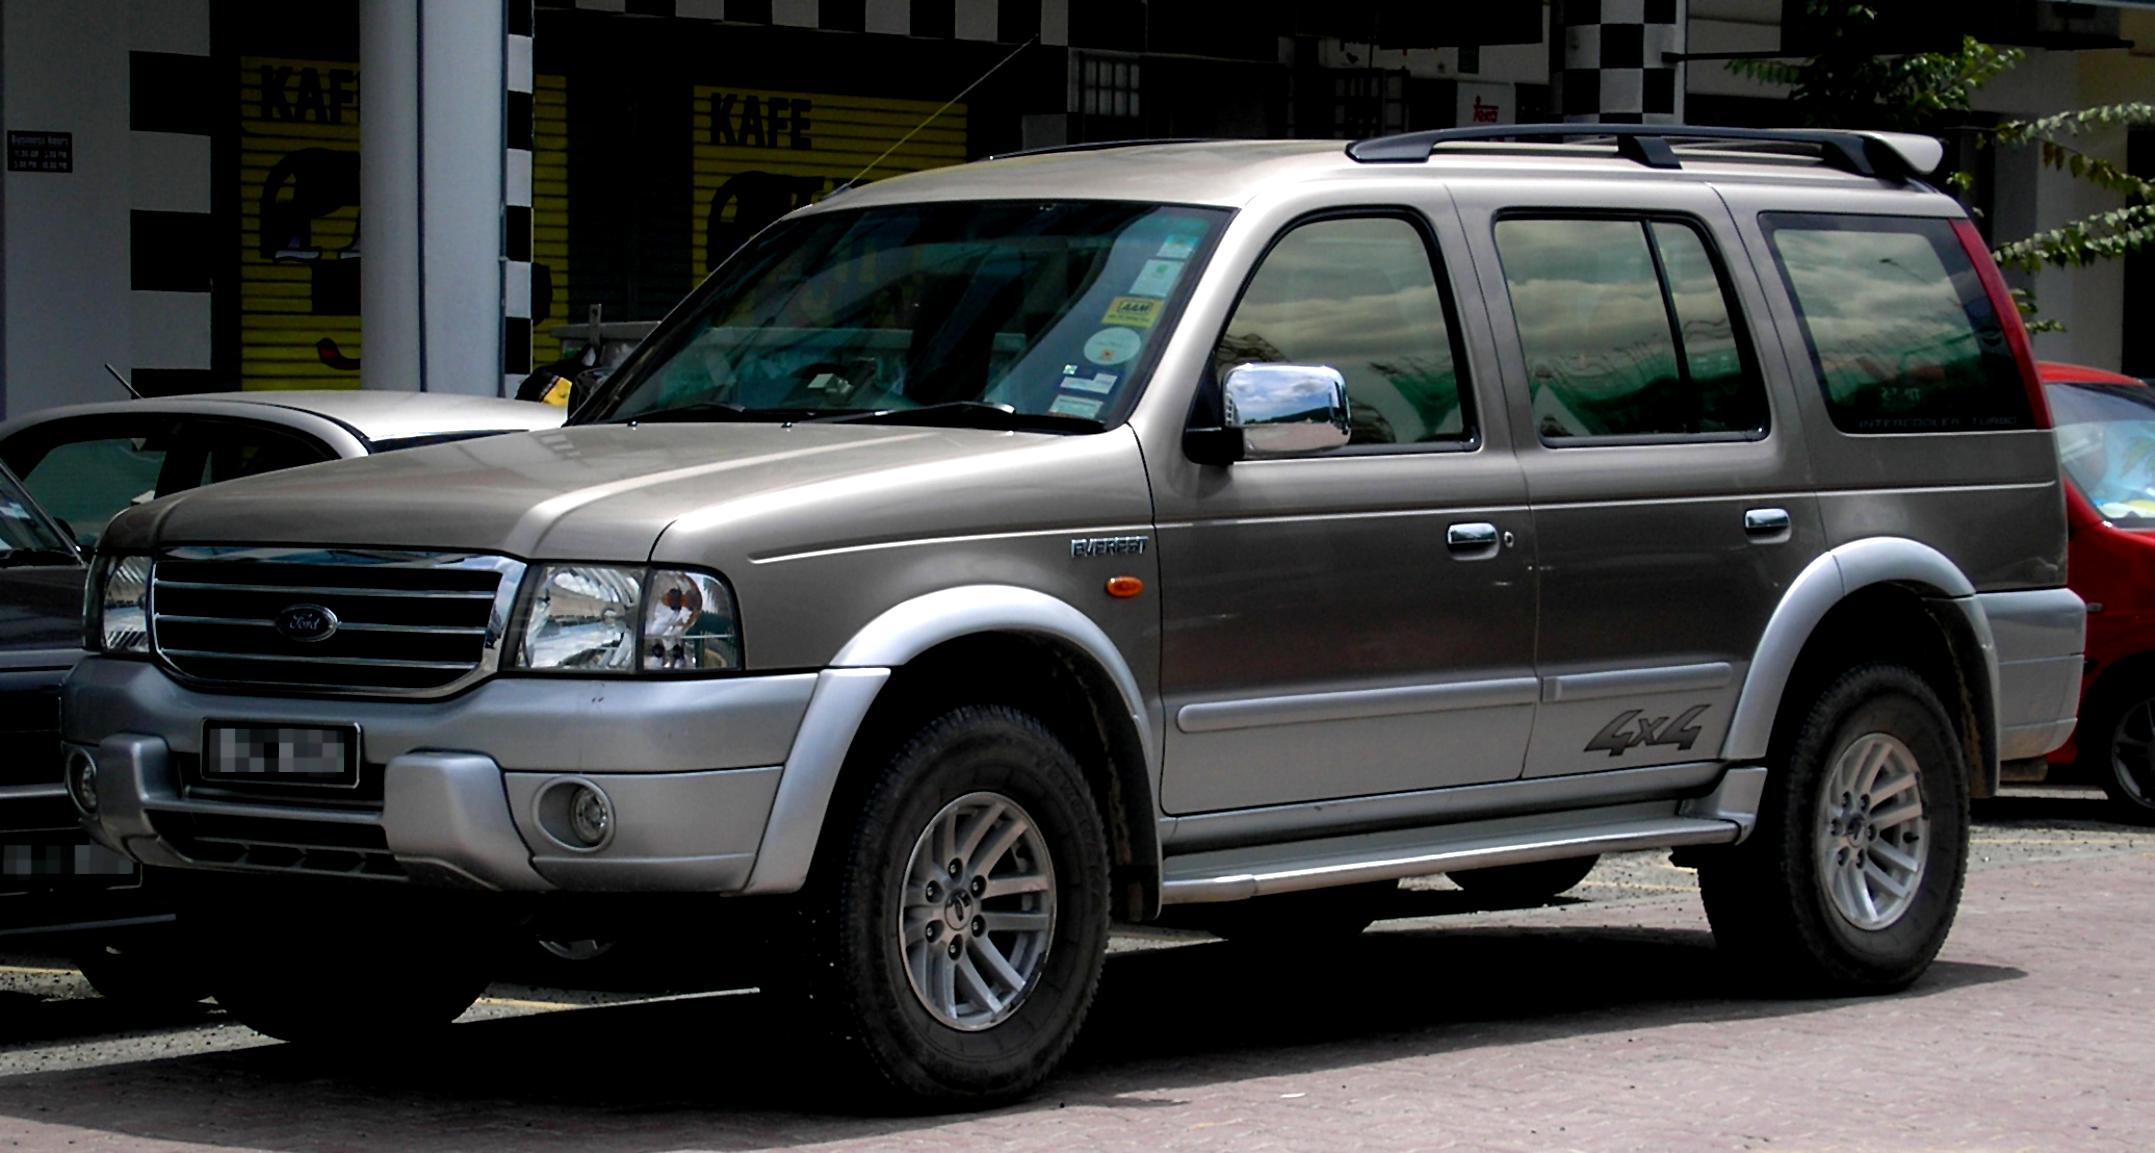 Ford everest 2003